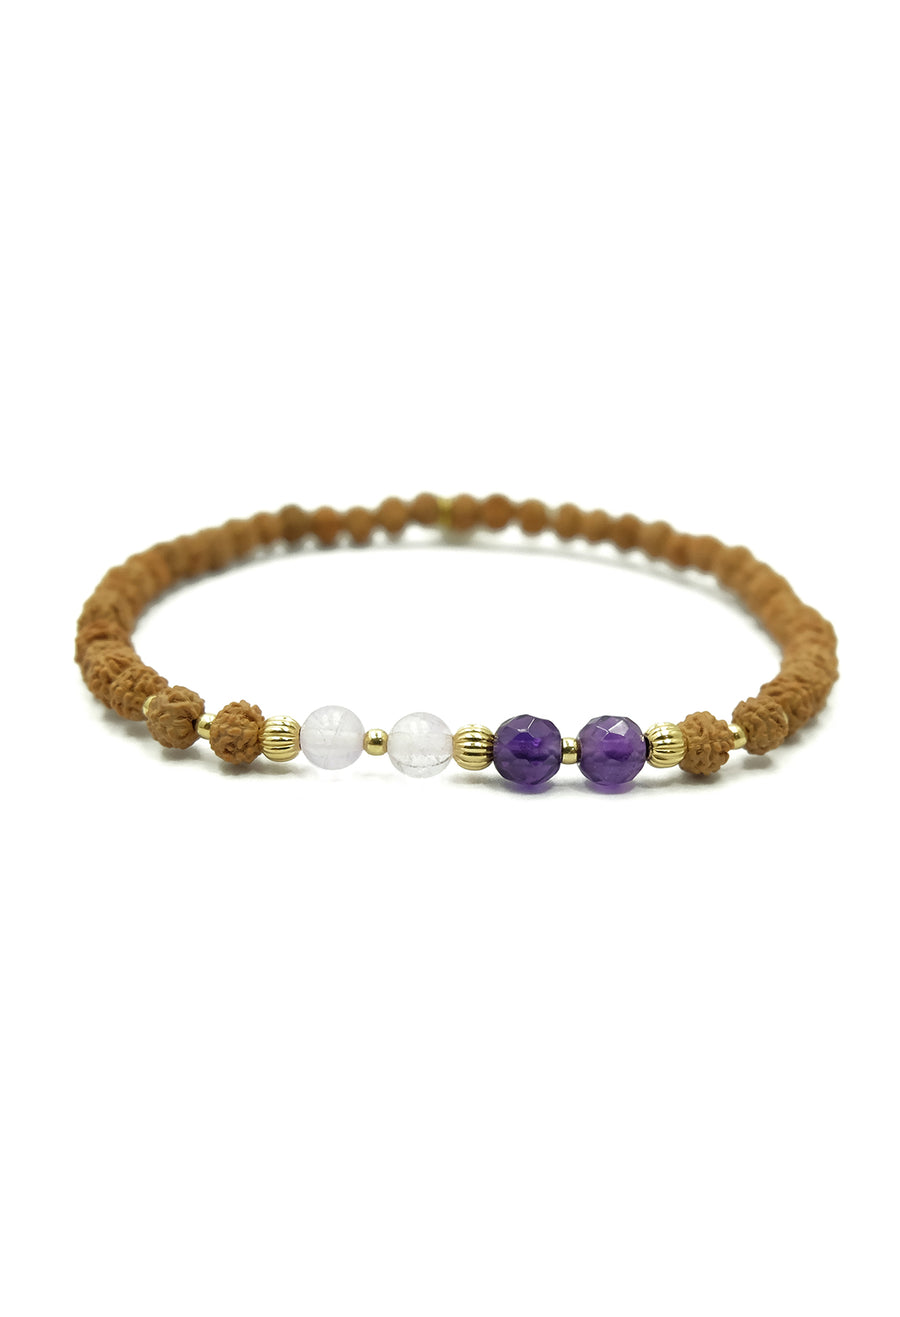 I am Calling IN DEEP MEDITATION malas bracelet